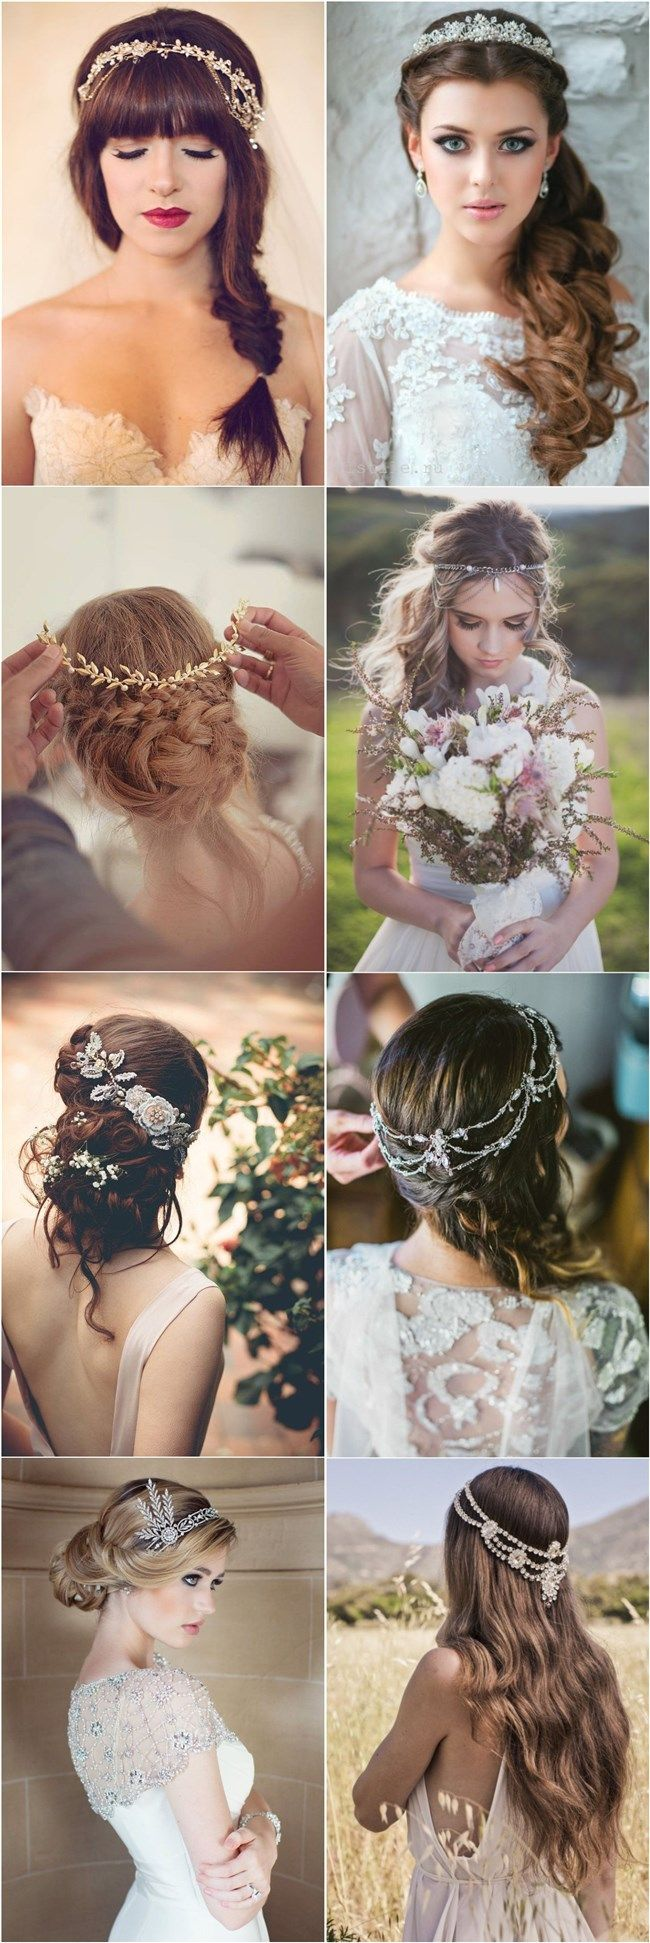 30 amazing wedding hairstyles with headpiece | weddings! | pinterest